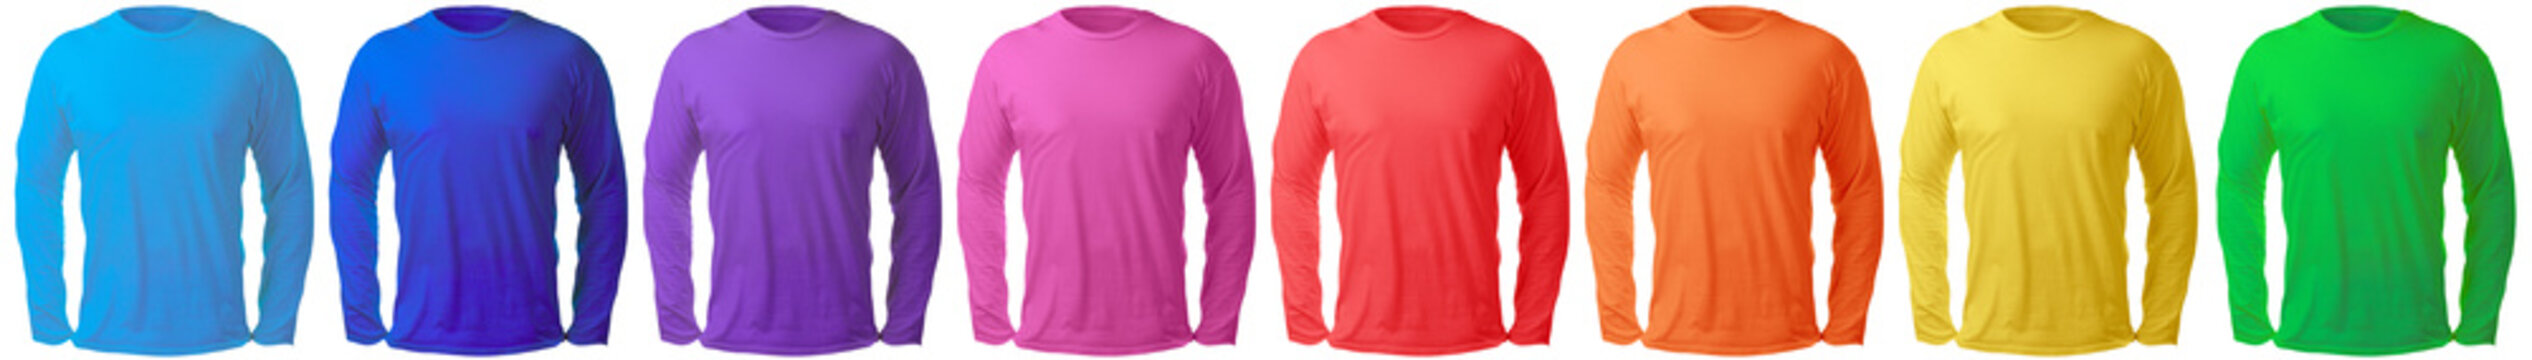 Long Sleeved Shirt Design Template in Many Color